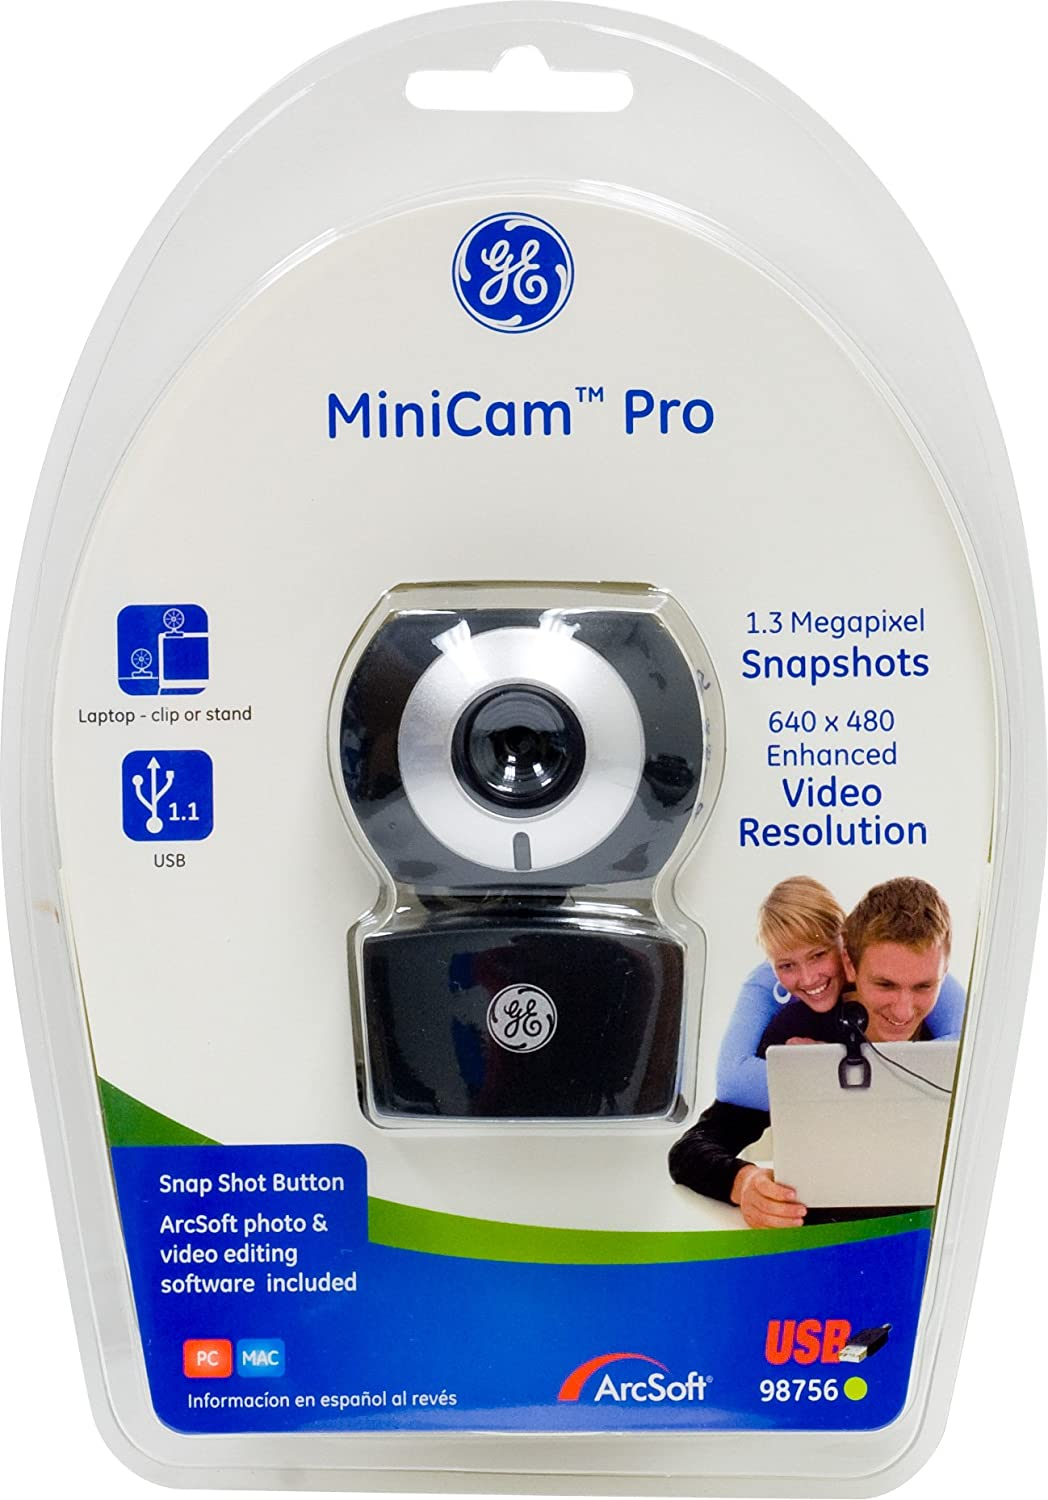 GE MINICAM 98756 WINDOWS 8 DRIVERS DOWNLOAD